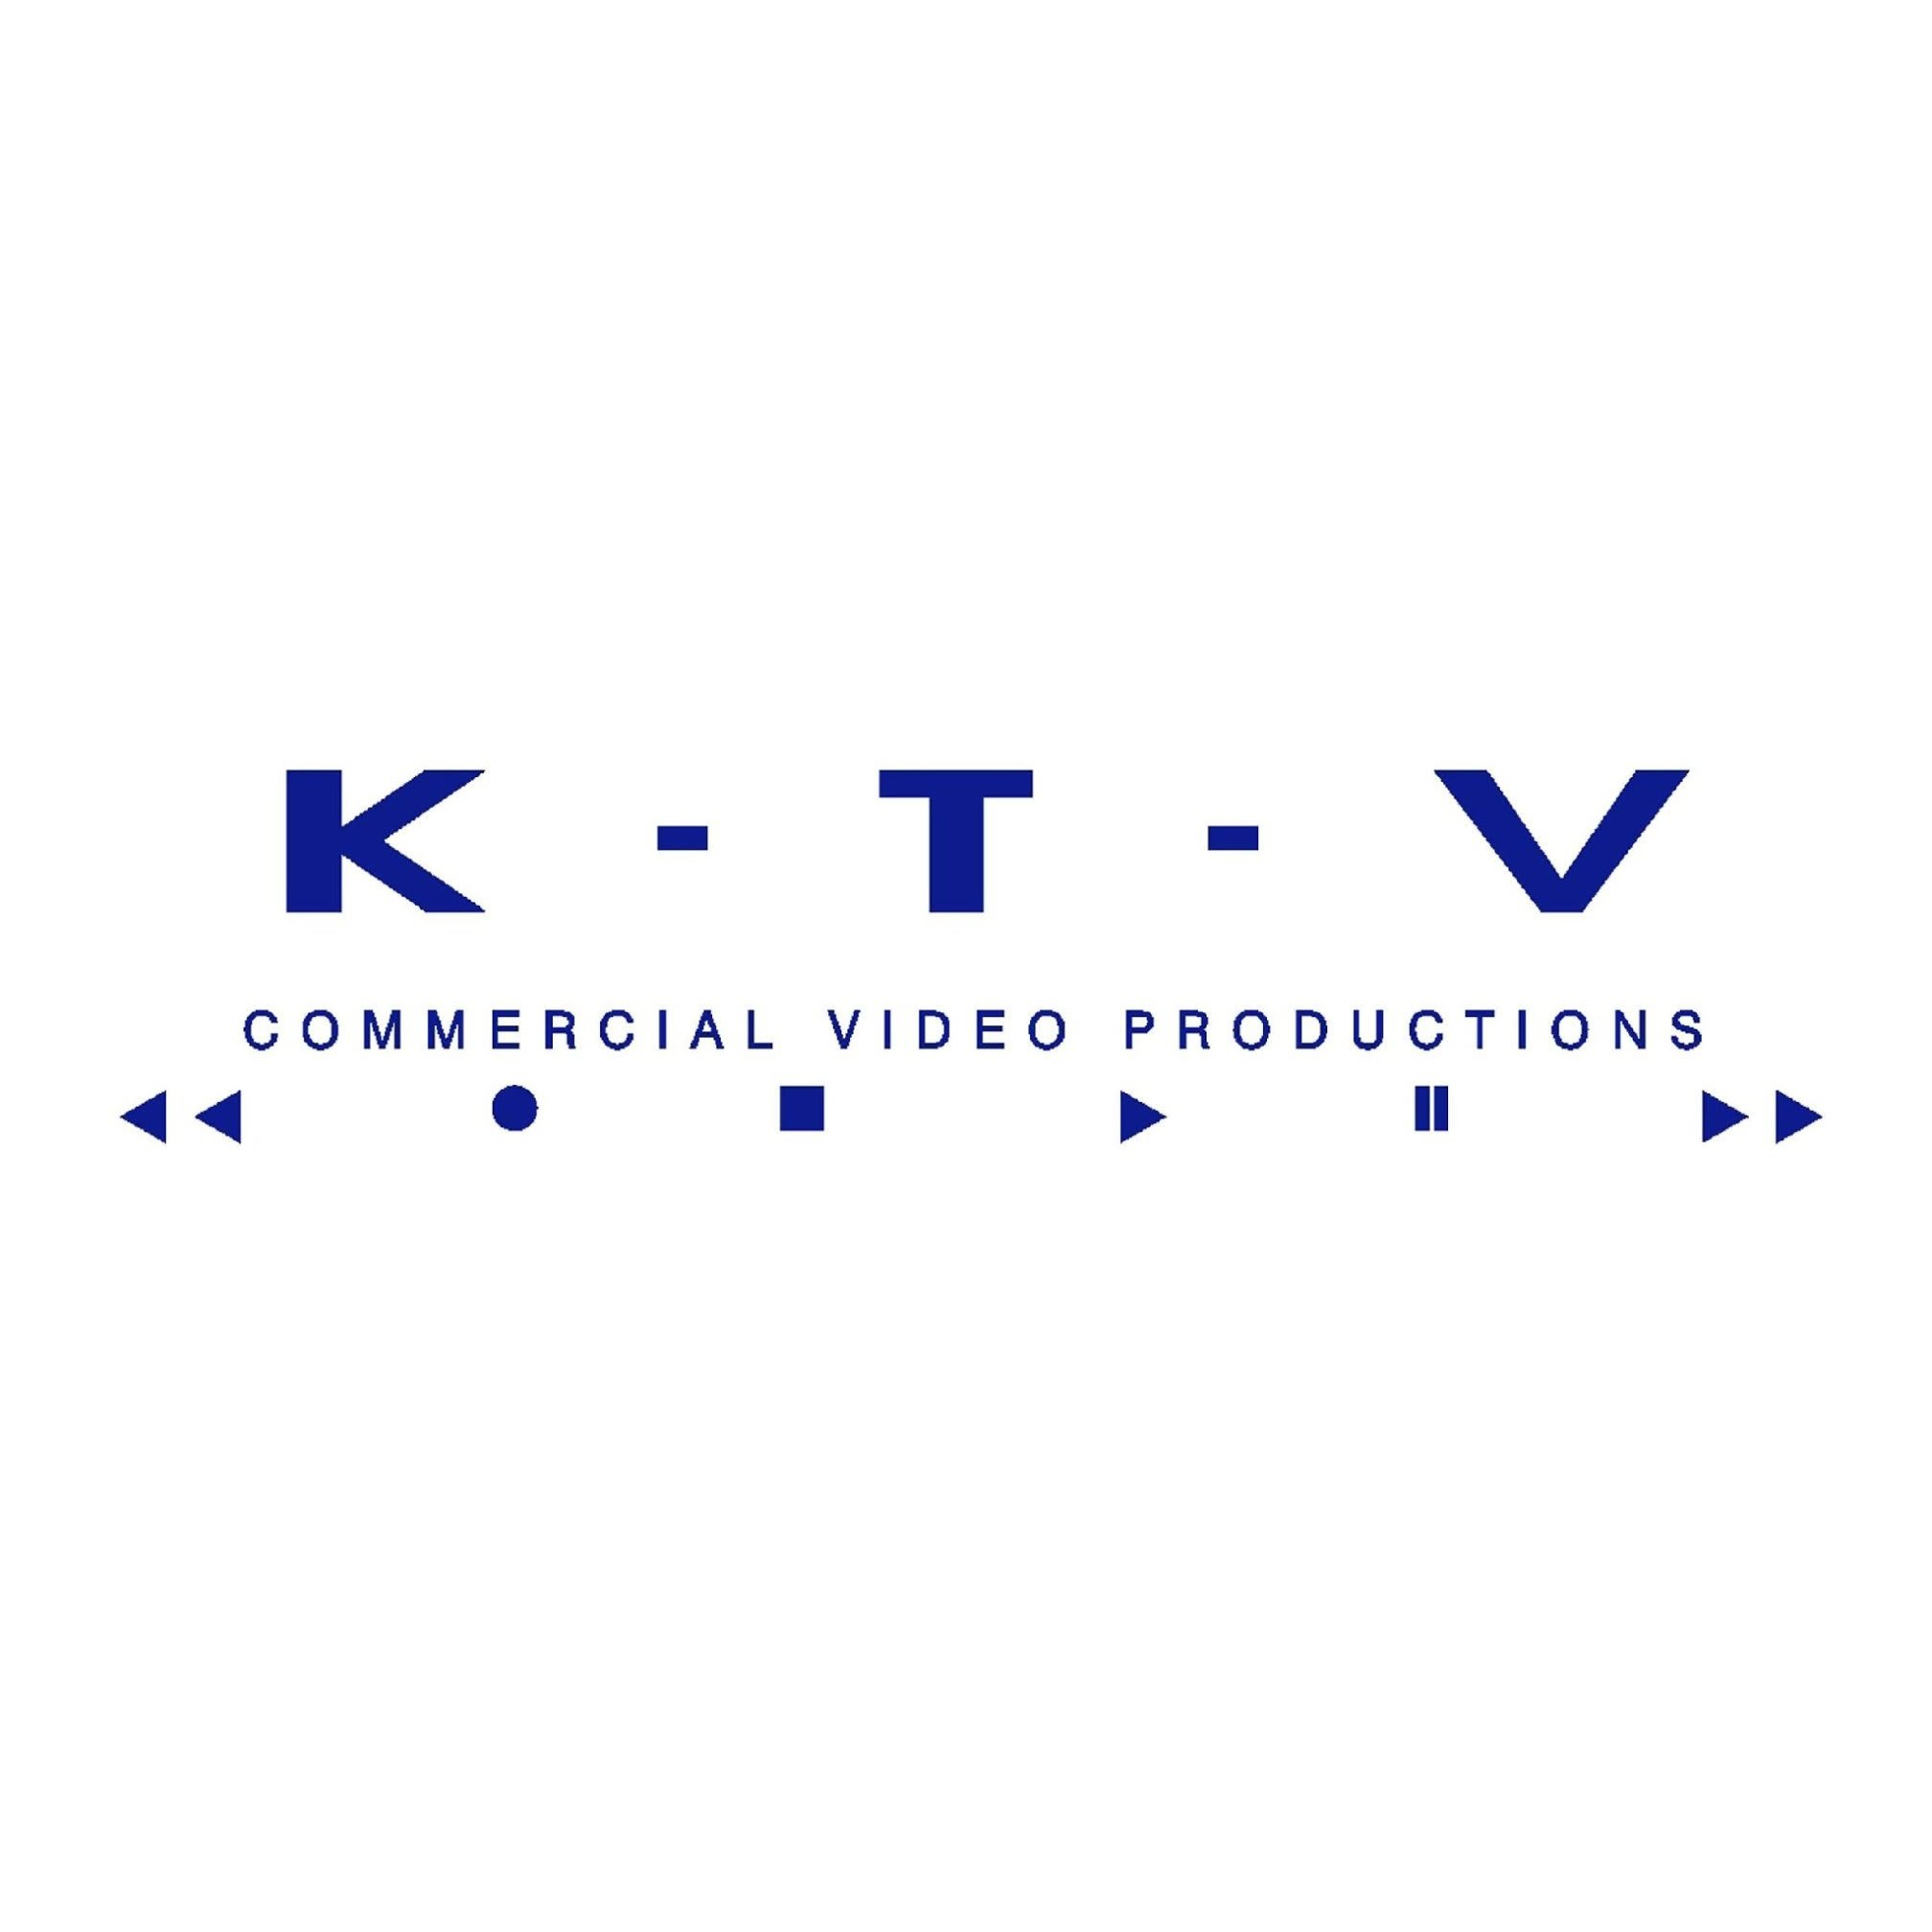 KTV Commercial Video Productions - Harrogate, North Yorkshire HG2 8DZ - 01423 873009 | ShowMeLocal.com